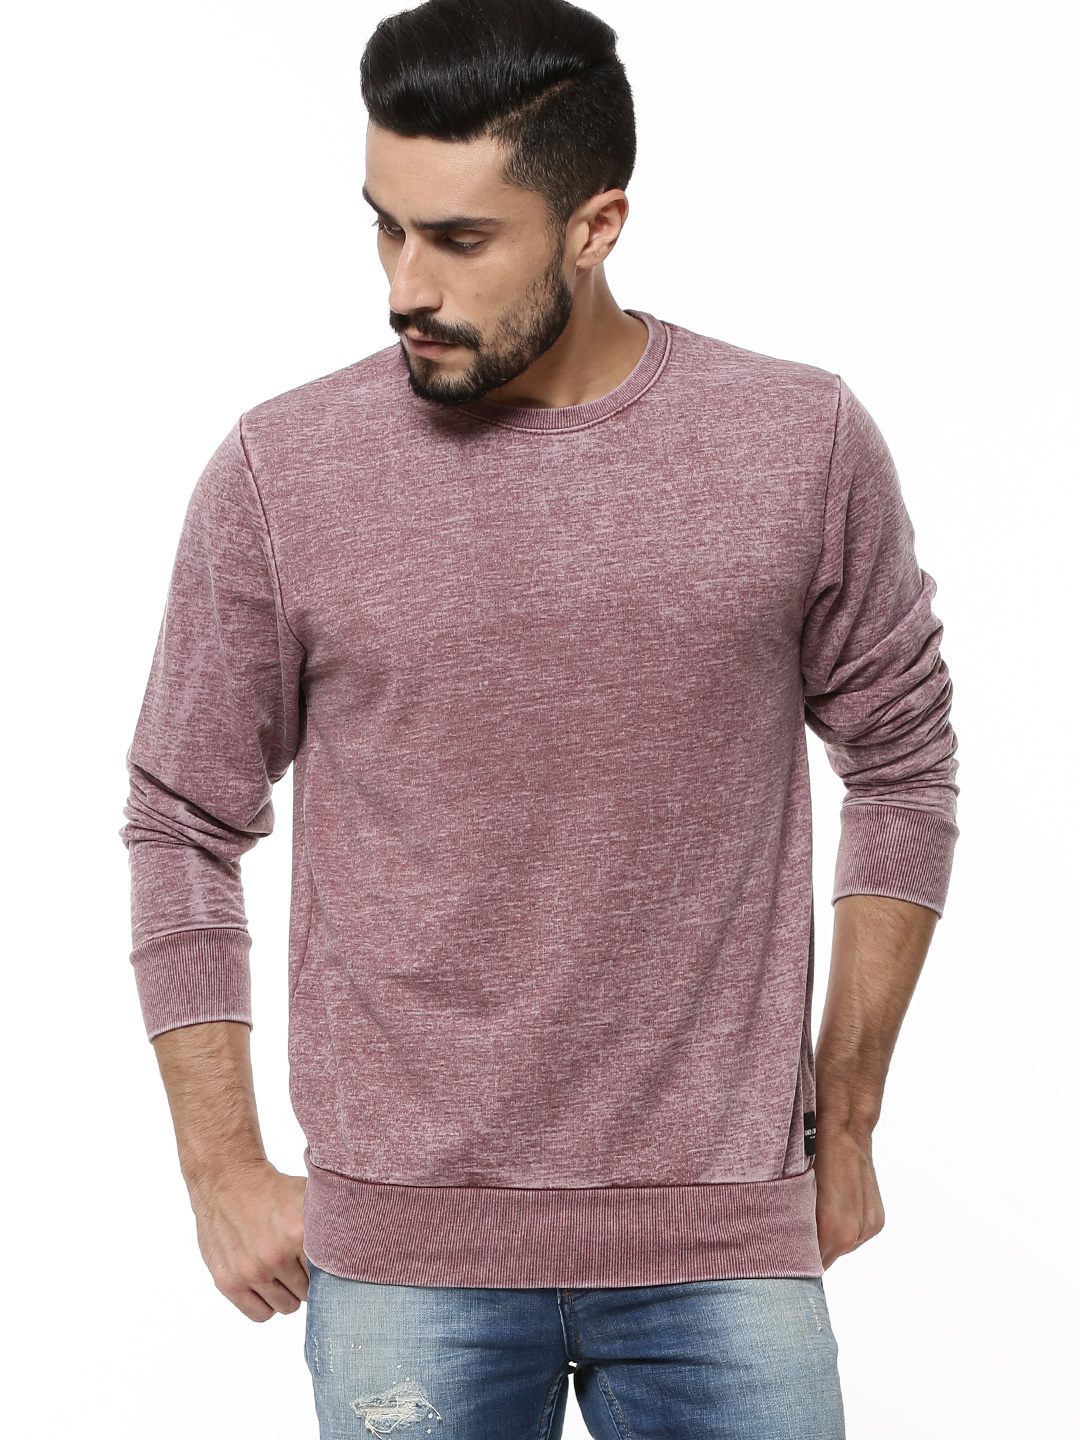 Only & Sons Brown/Rust Lightweight Washed Sweatshirt 1